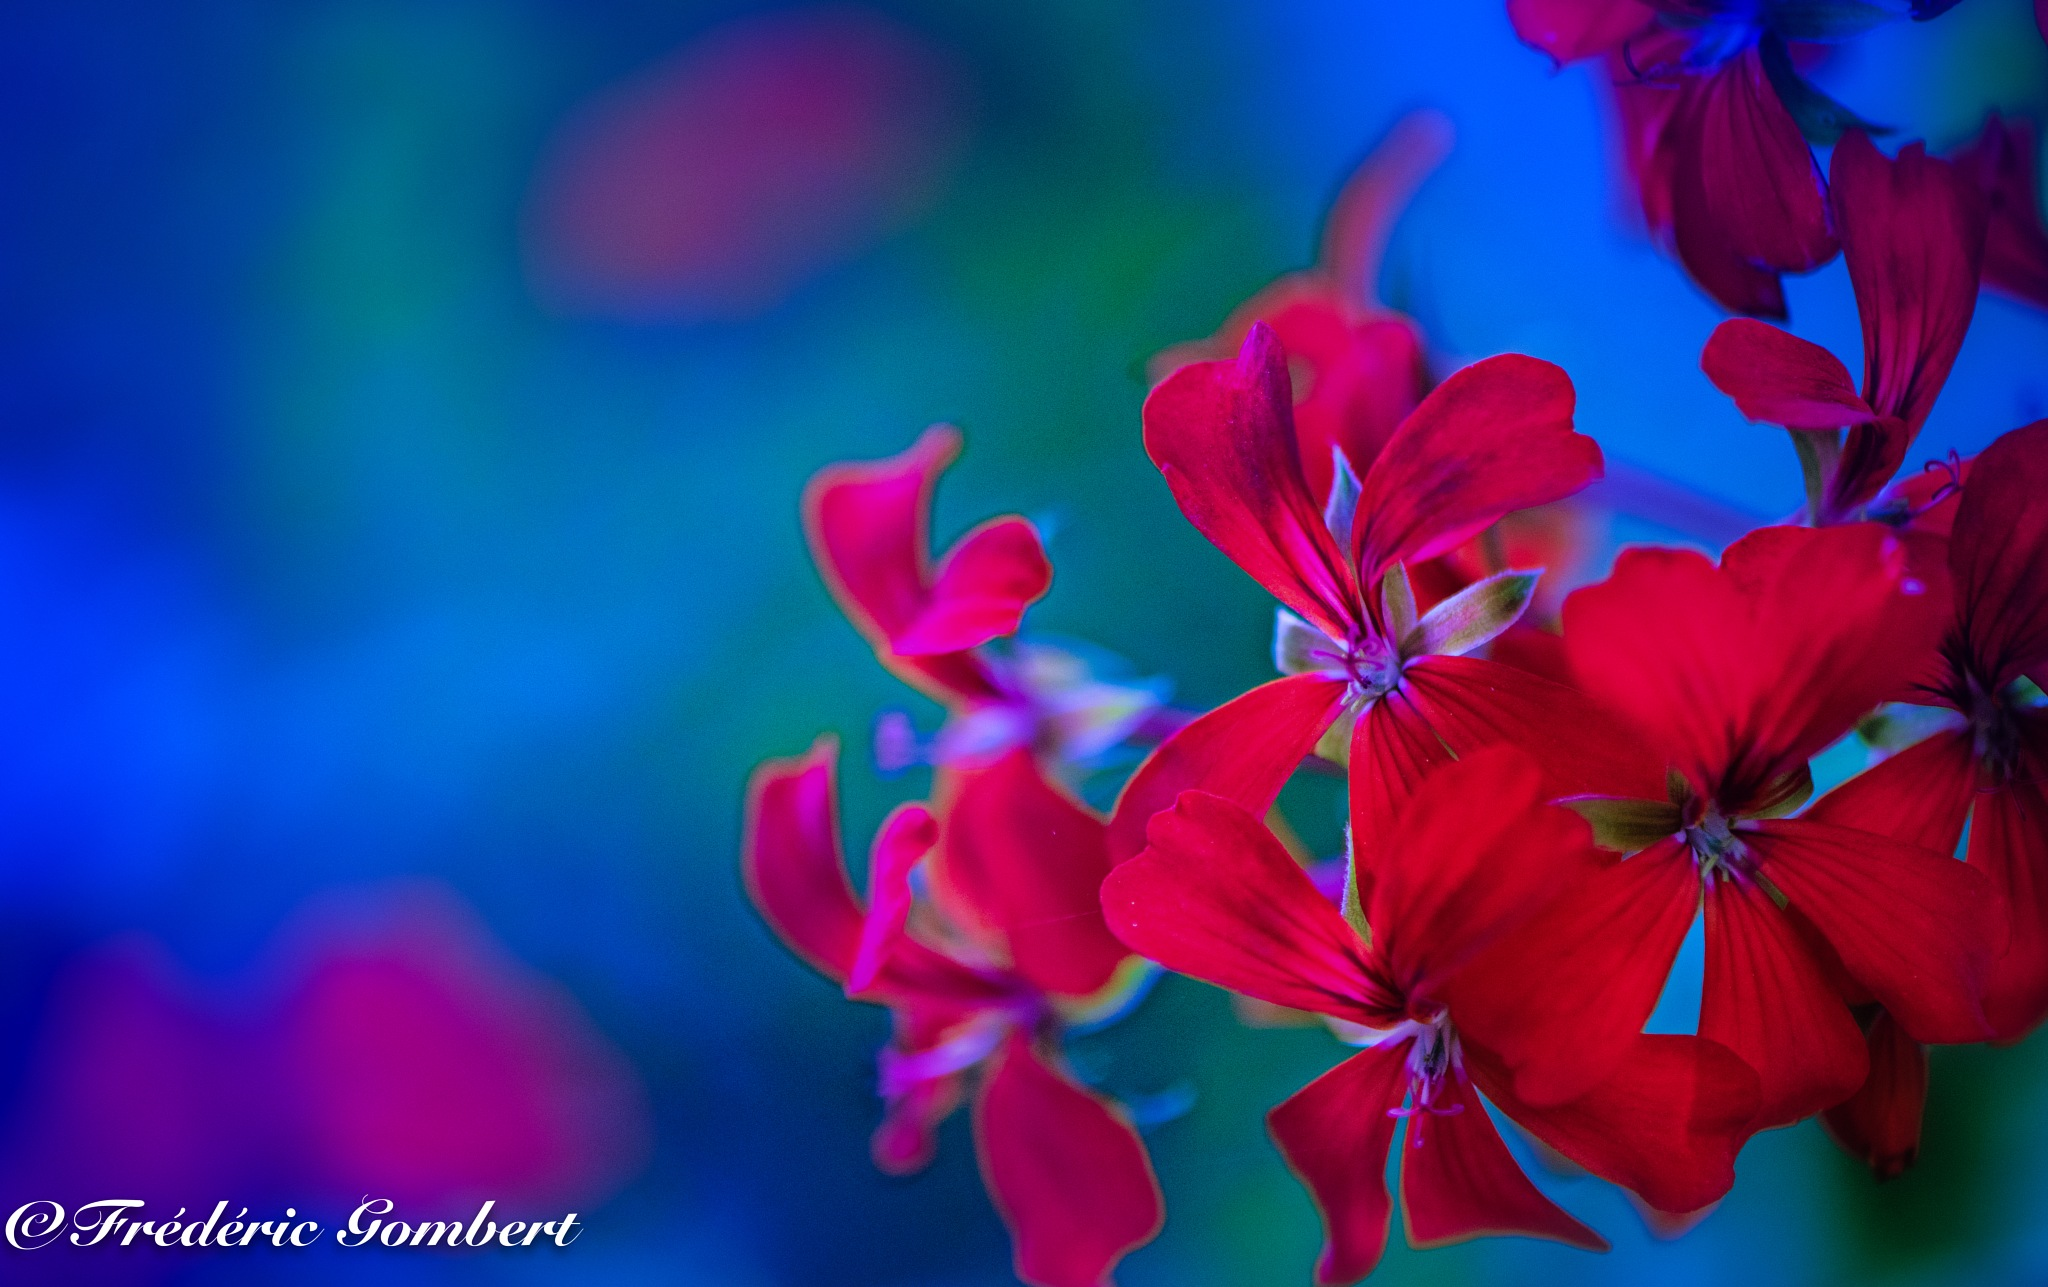 Yet, here by Frederic Gombert